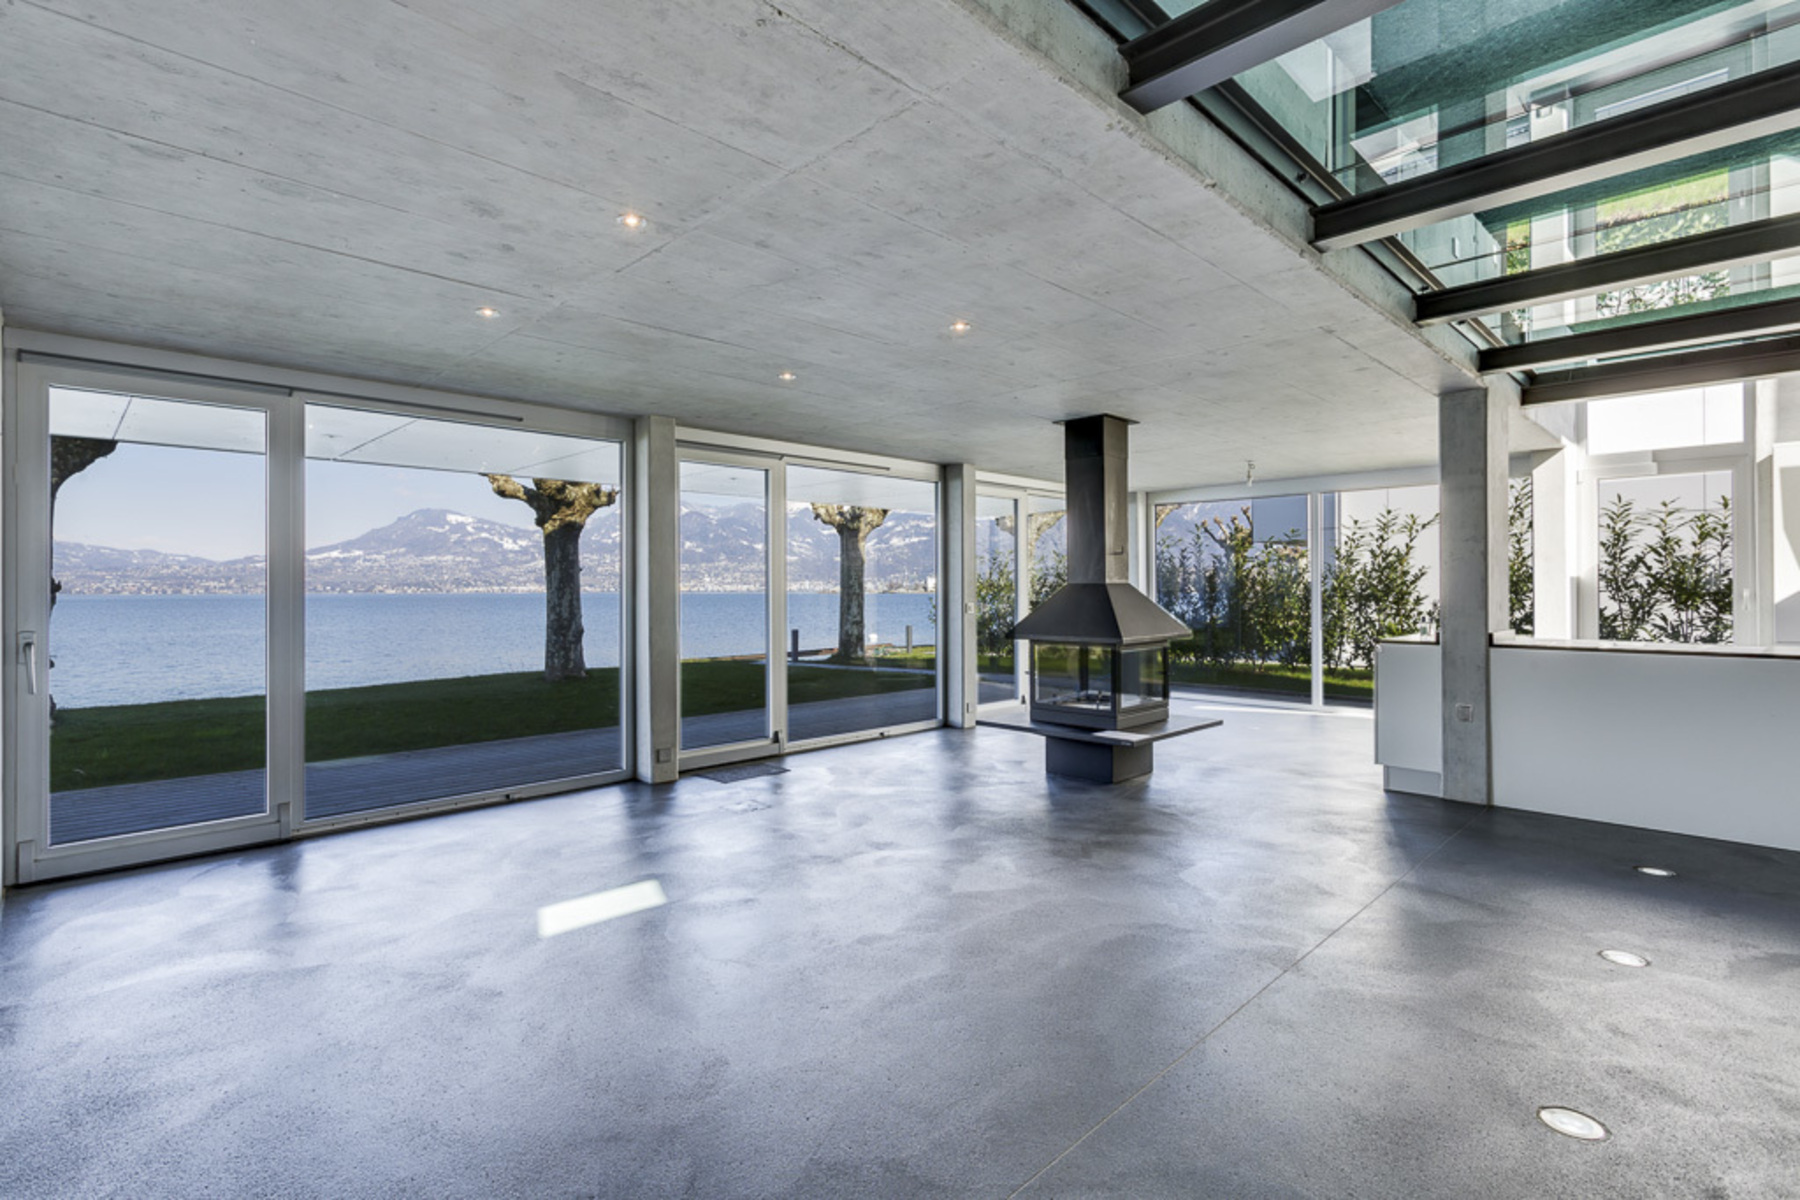 Single Family Home for Sale at Contemporary waterfront villa with mooring at private jetty Bouveret Bouveret, Vaud, 1897 Switzerland